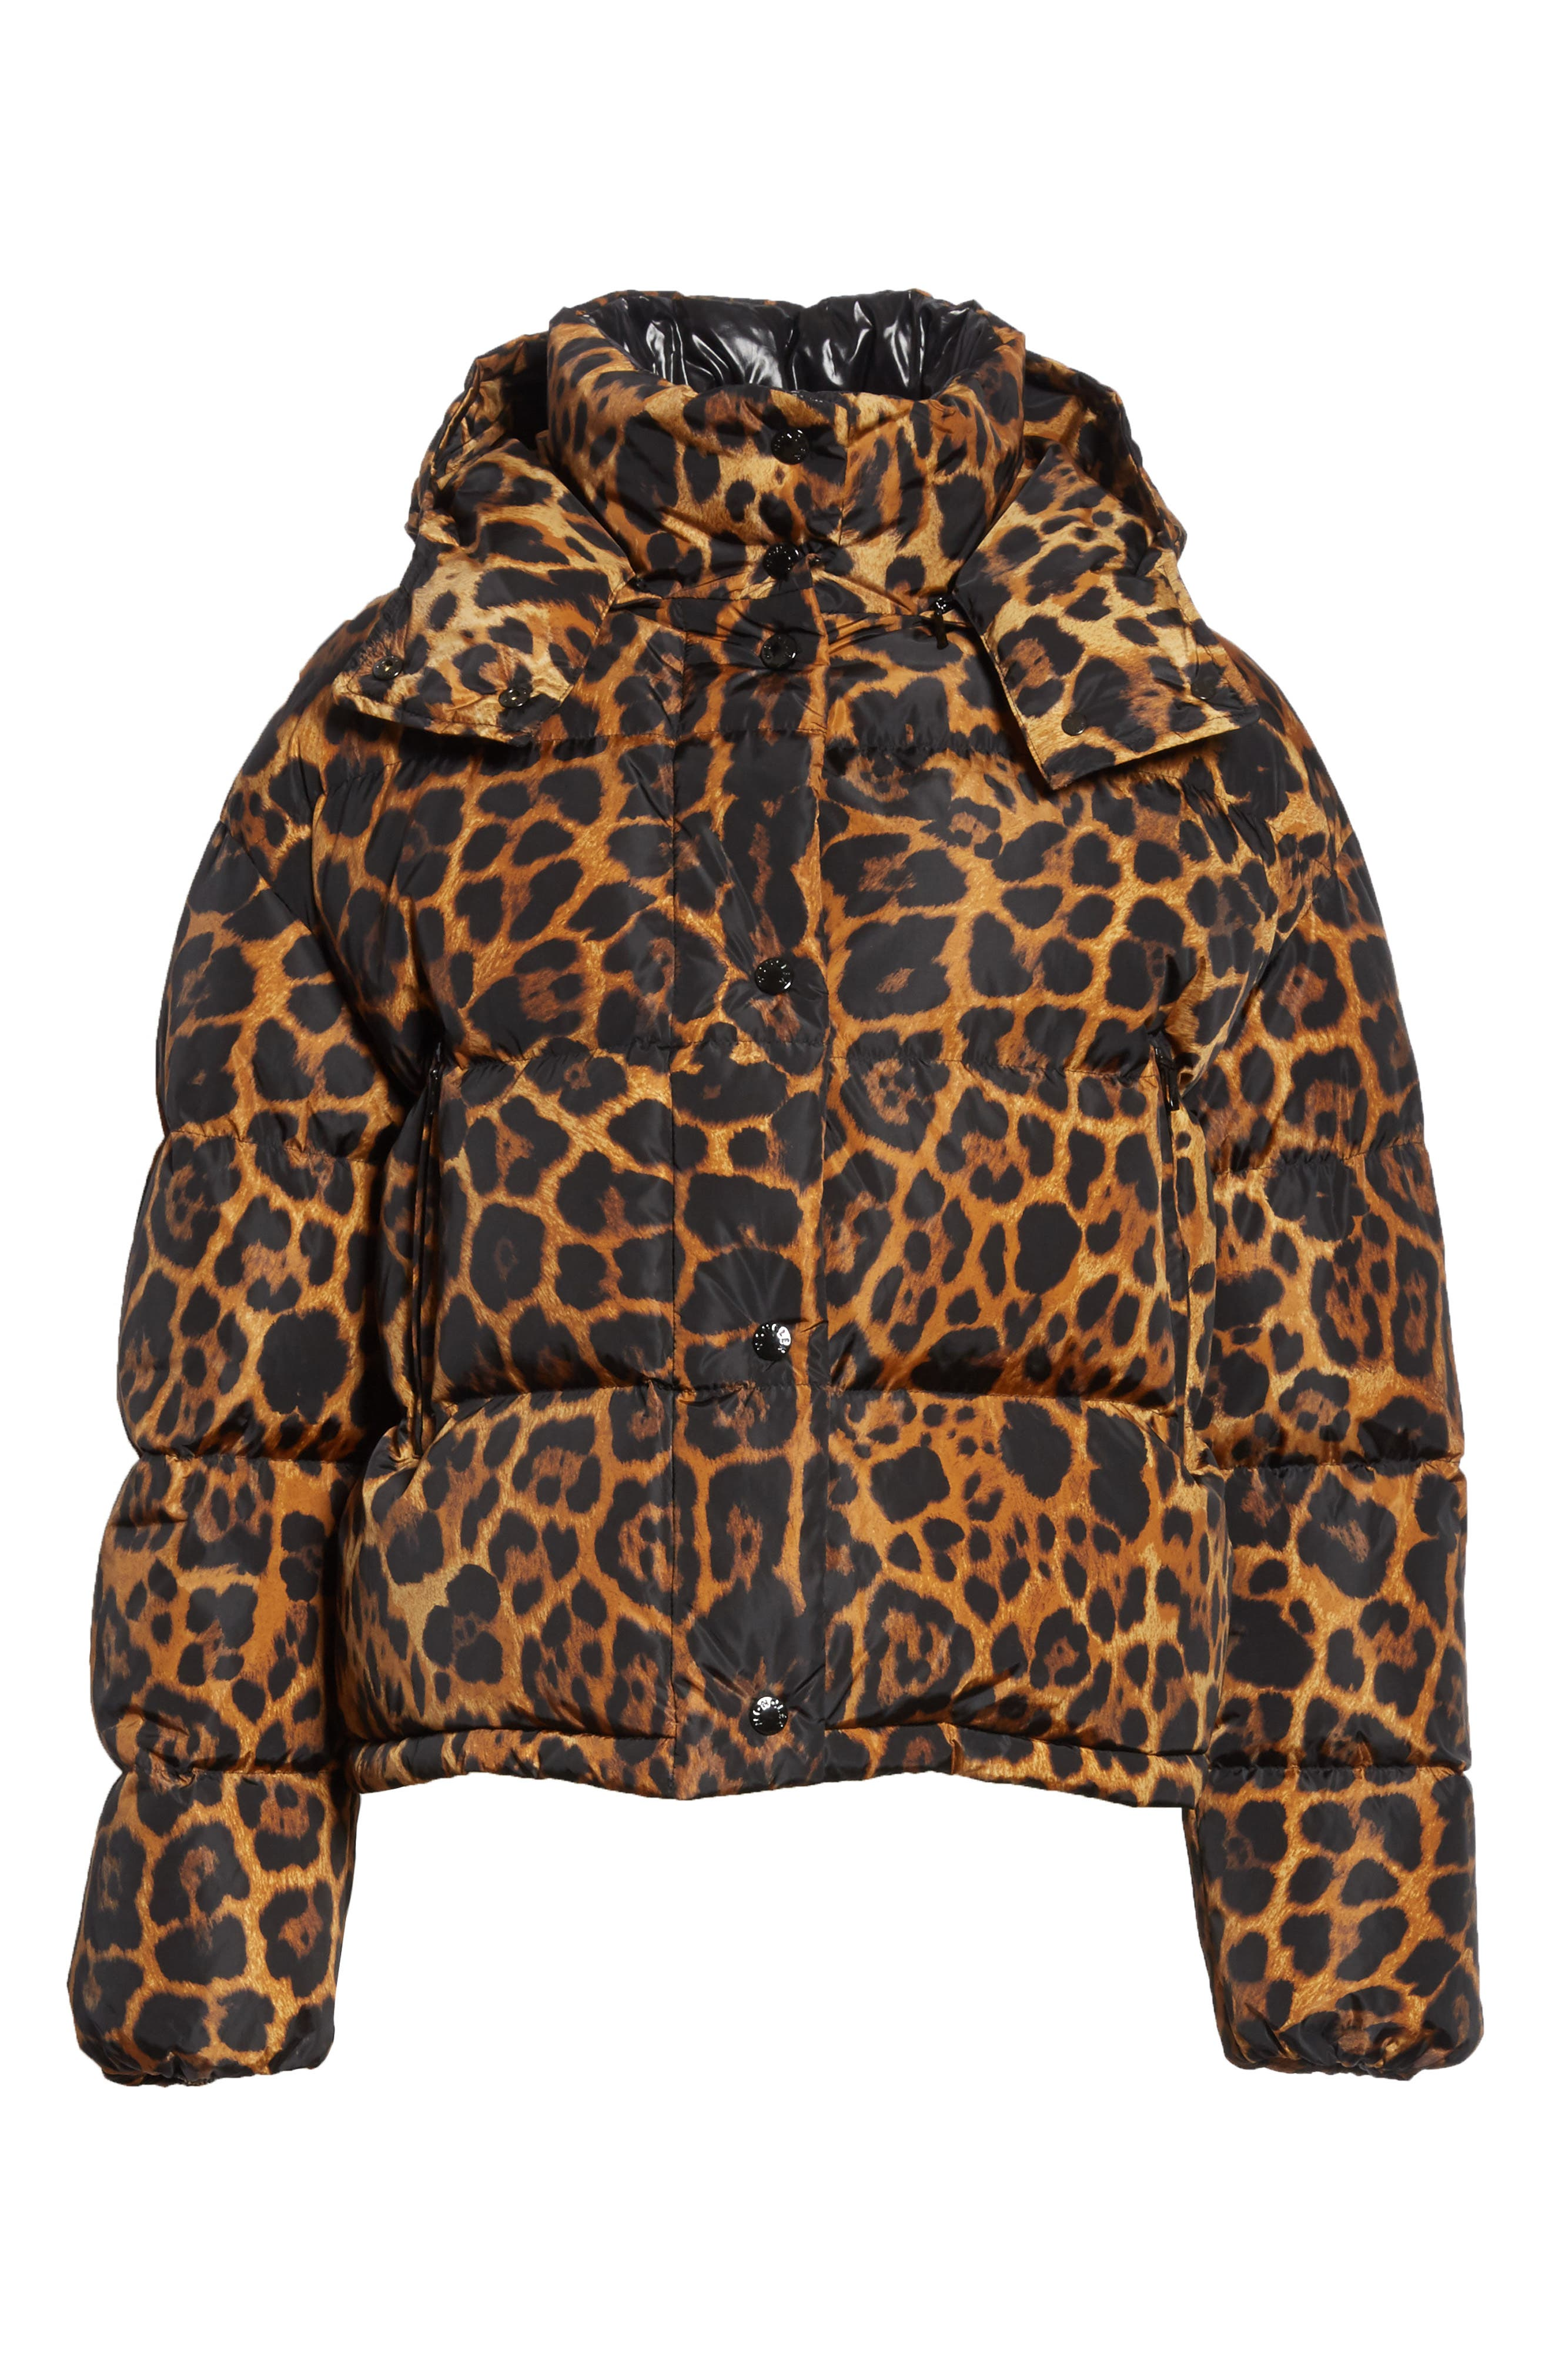 MONCLER, Caille Leopard Print Down Puffer Jacket, Alternate thumbnail 6, color, 240